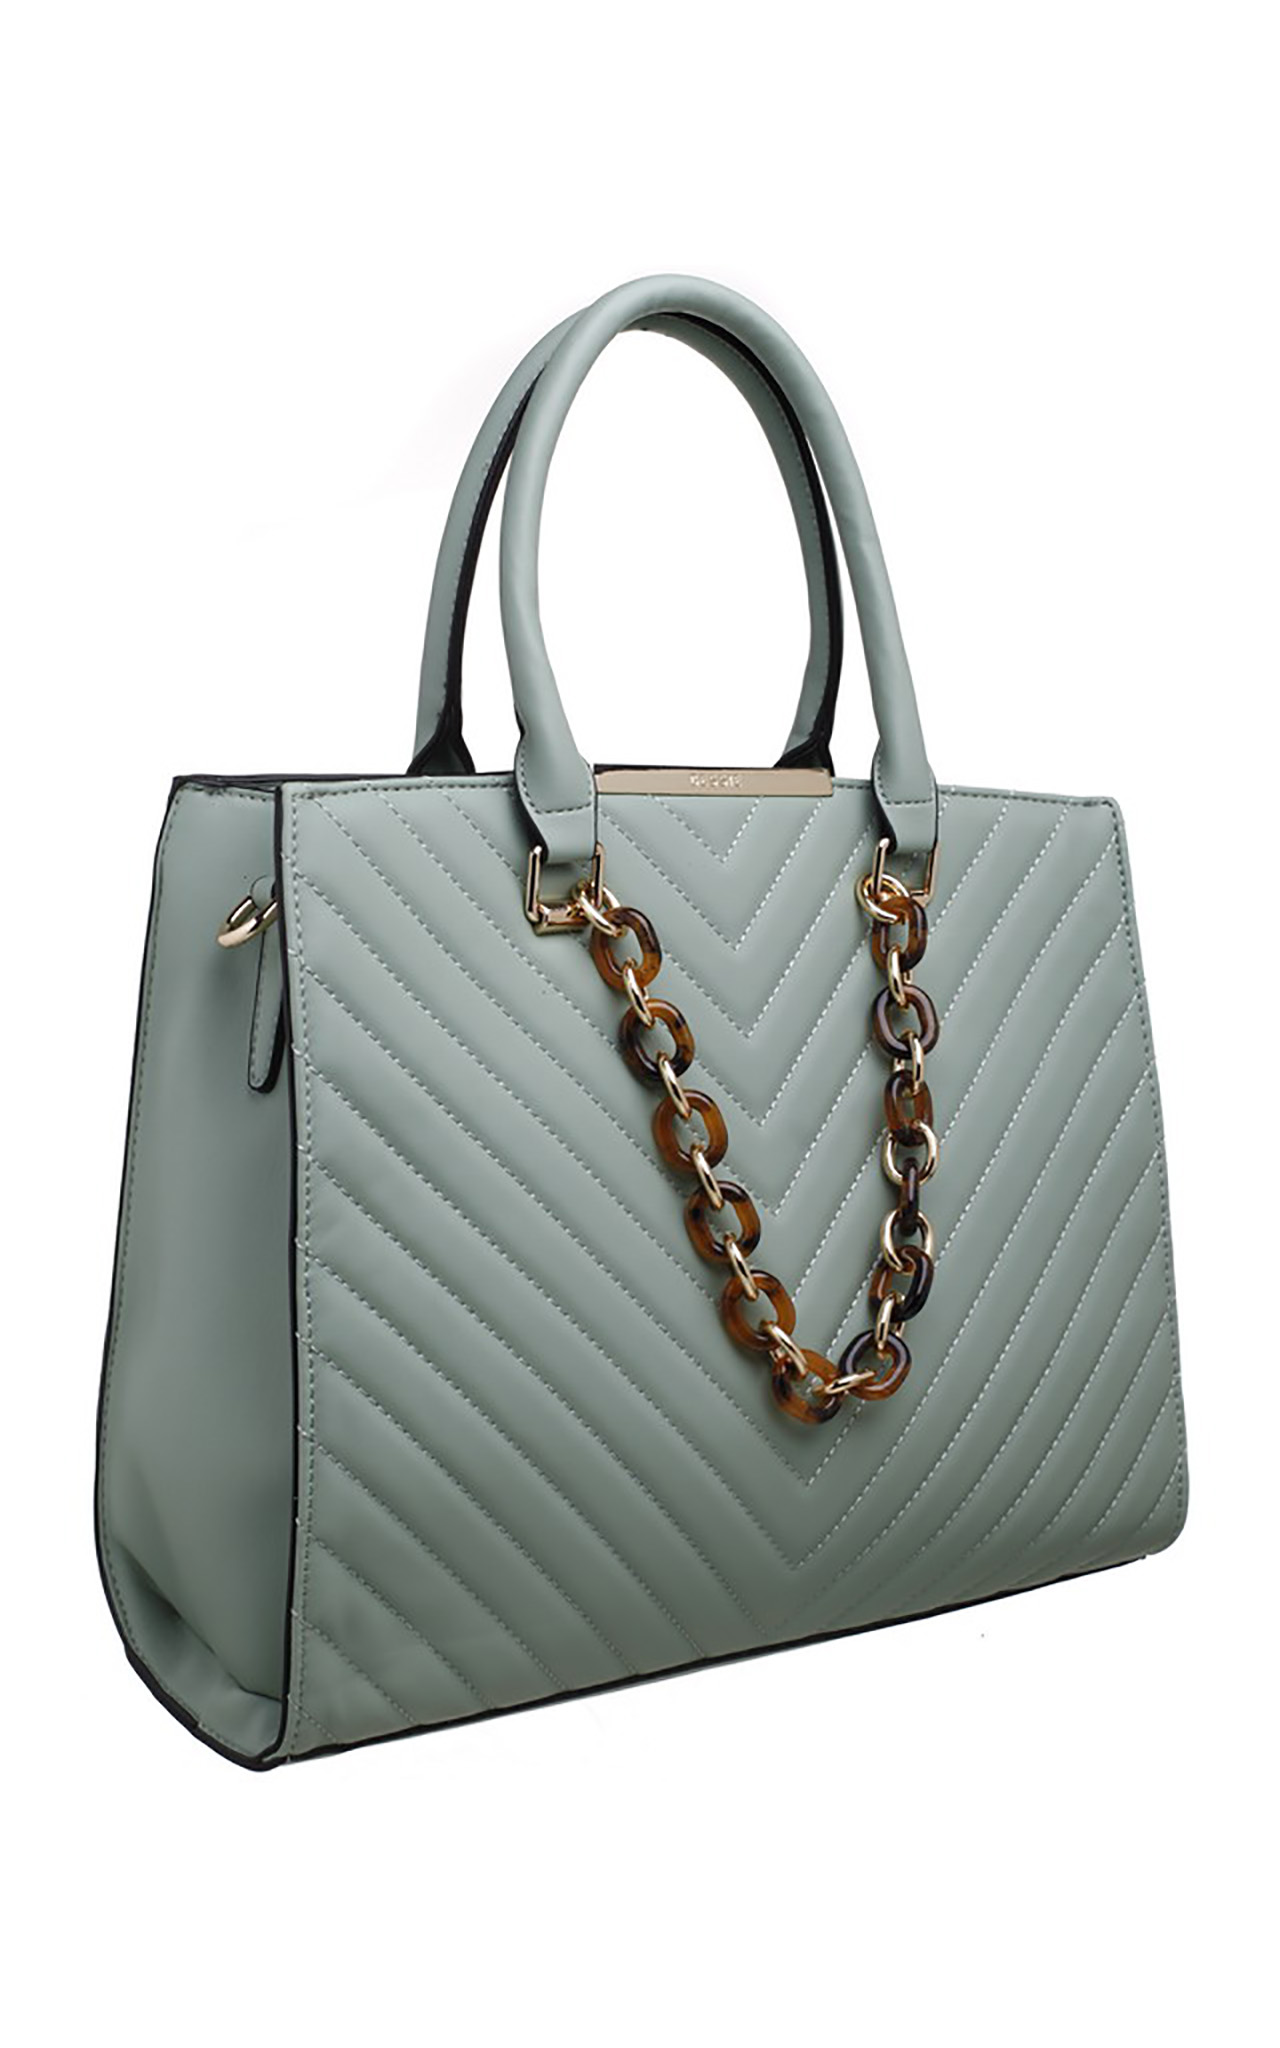 ACRYLIC CHAIN QUILTED TOTE BAG